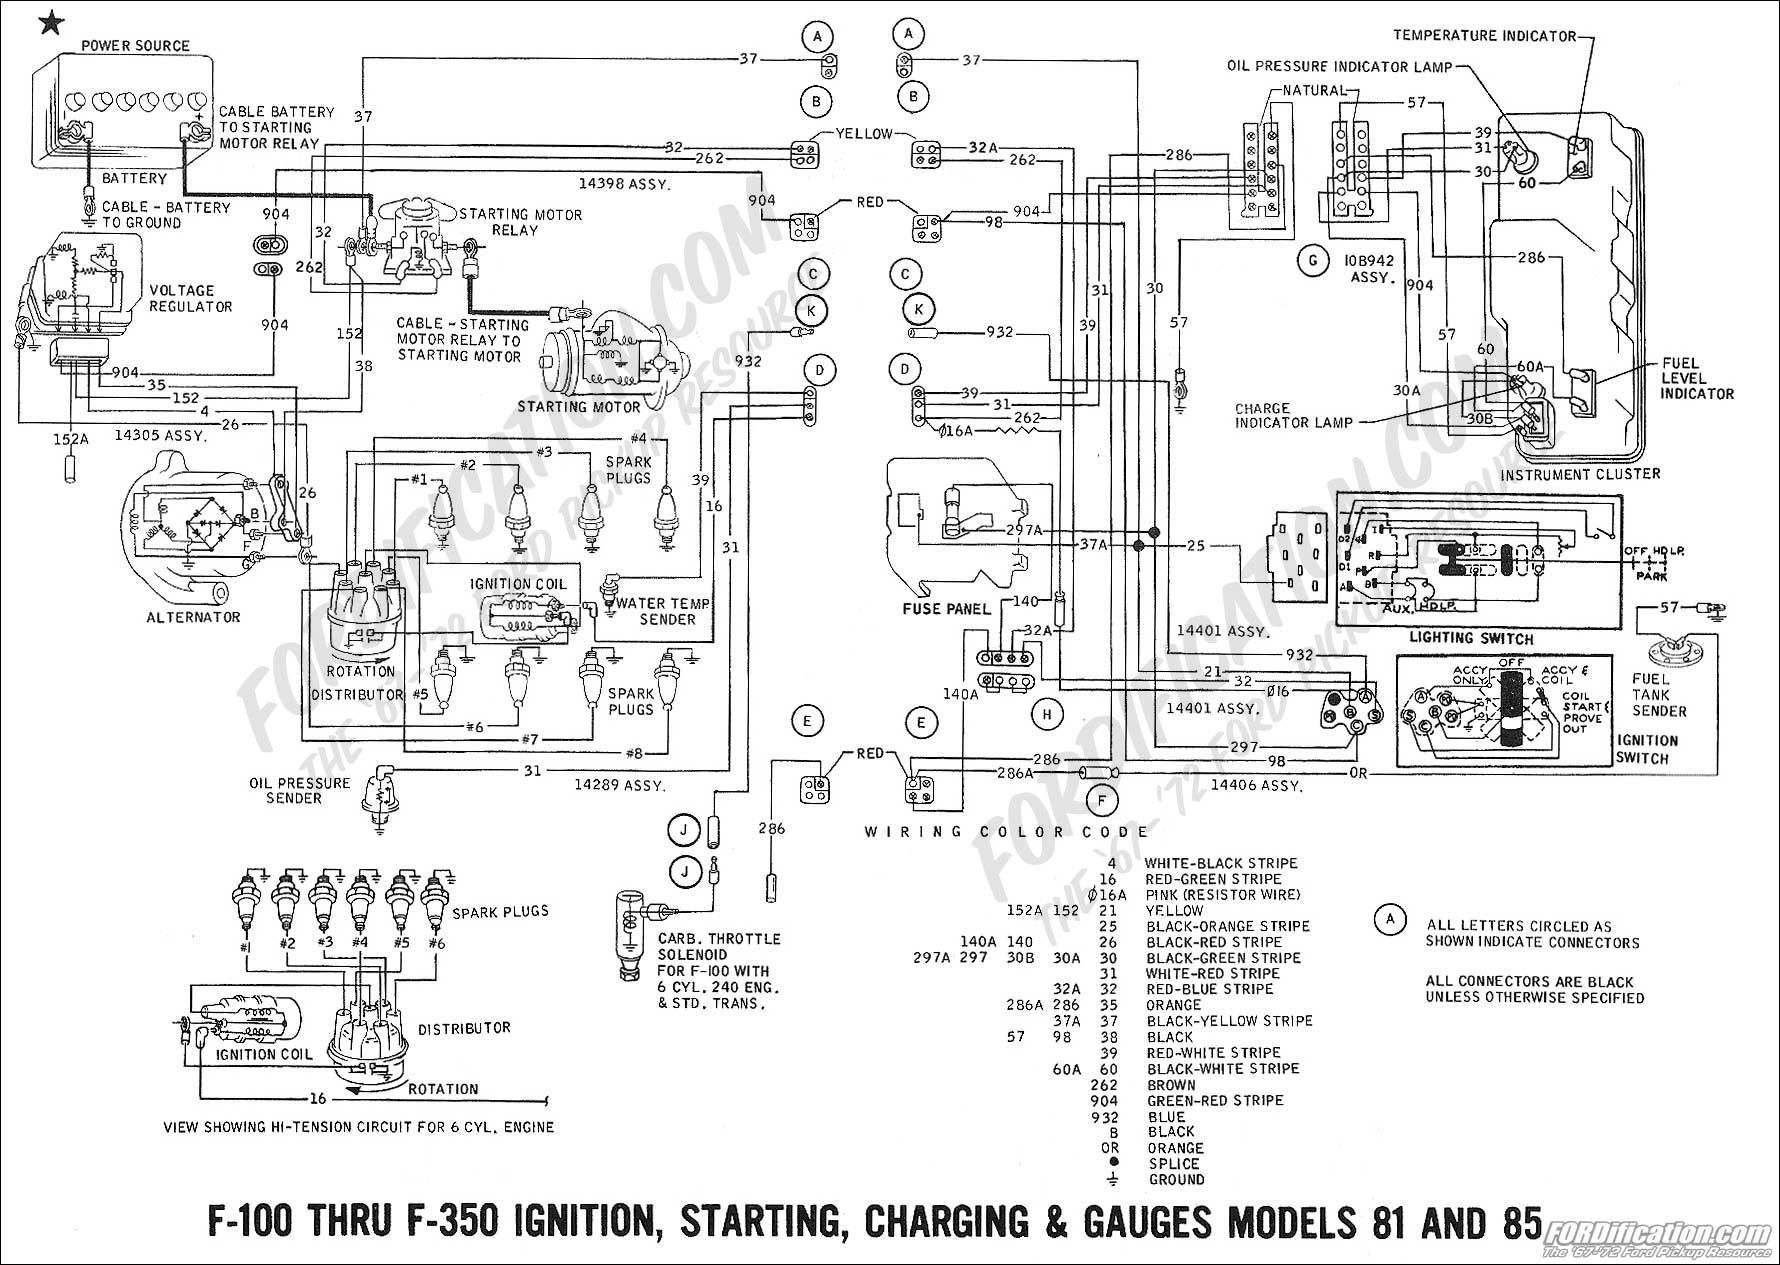 hight resolution of 1973 ford f 100 dash gauges wiring diagram wiring diagram blogs 1966 f 100 wiring diagram ford f100 wiring diagrams